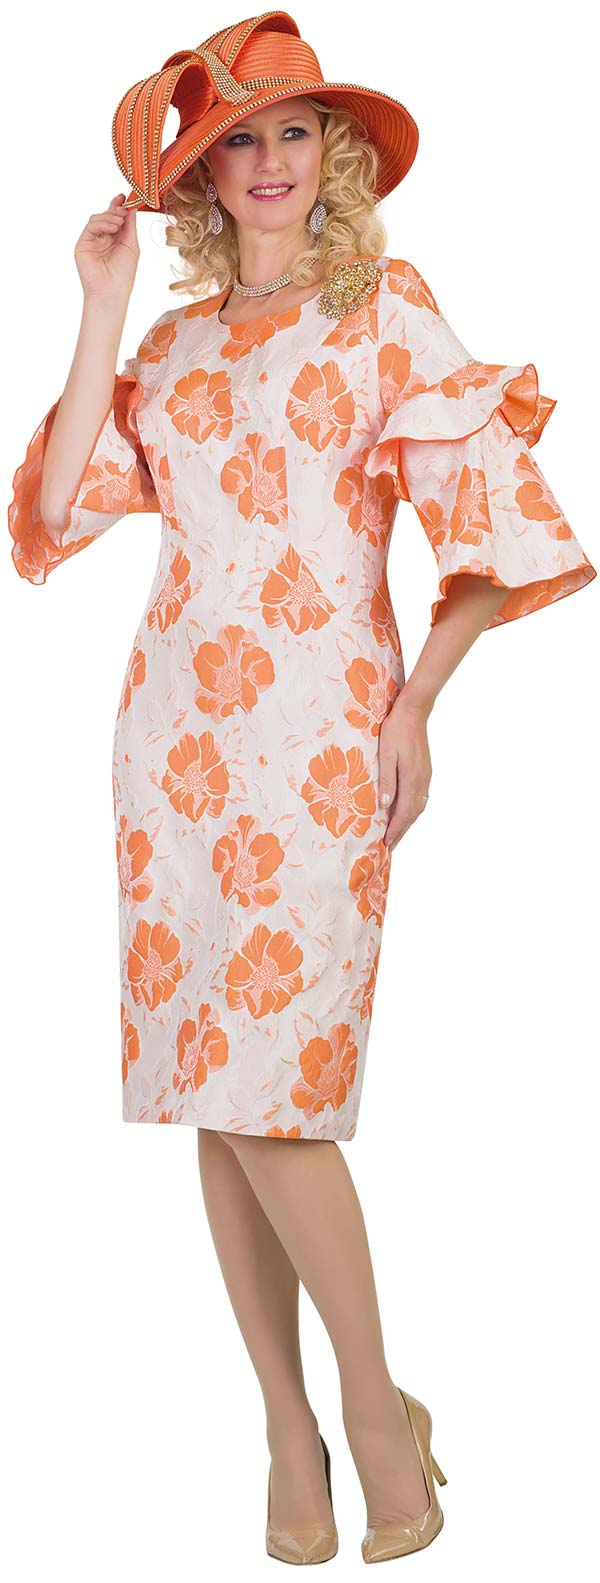 Lily and Taylor 4535-Orange - Sheath Dress In Floral Print Novelty Fabric With Ruffle Flounce Sleeves